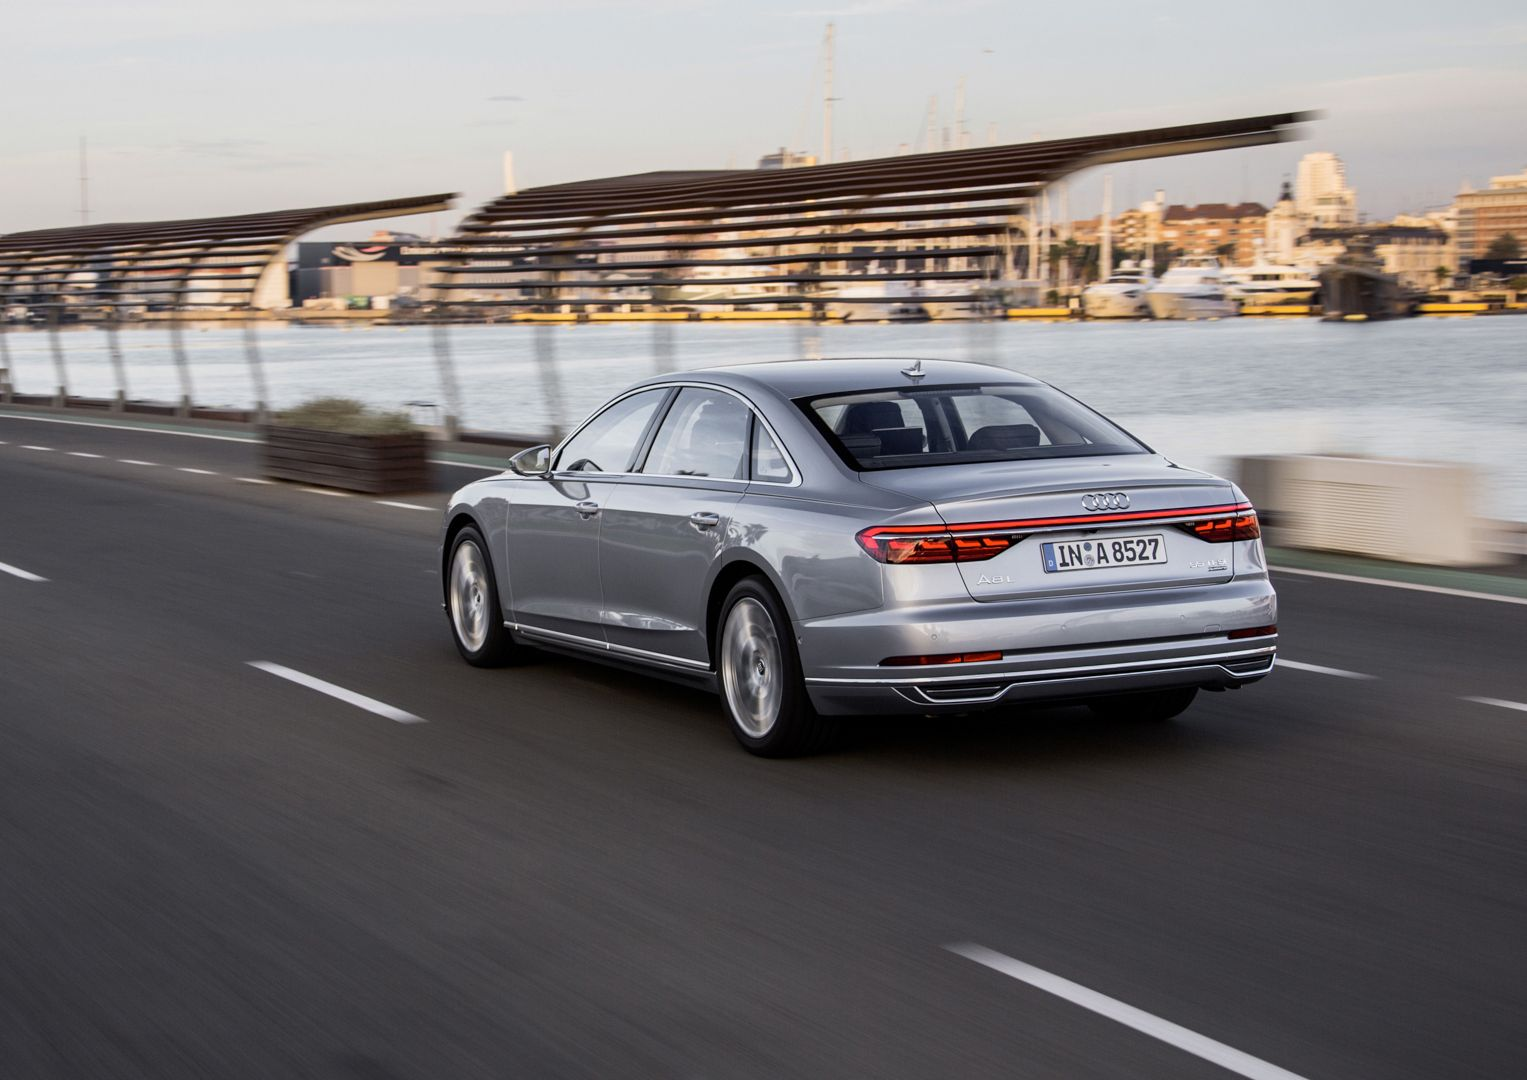 Video Pov Acceleration Of The Audi A8 55 Tfsi Autotopnl Best Luxury Cars Luxury Car Brands Top Expensive Cars